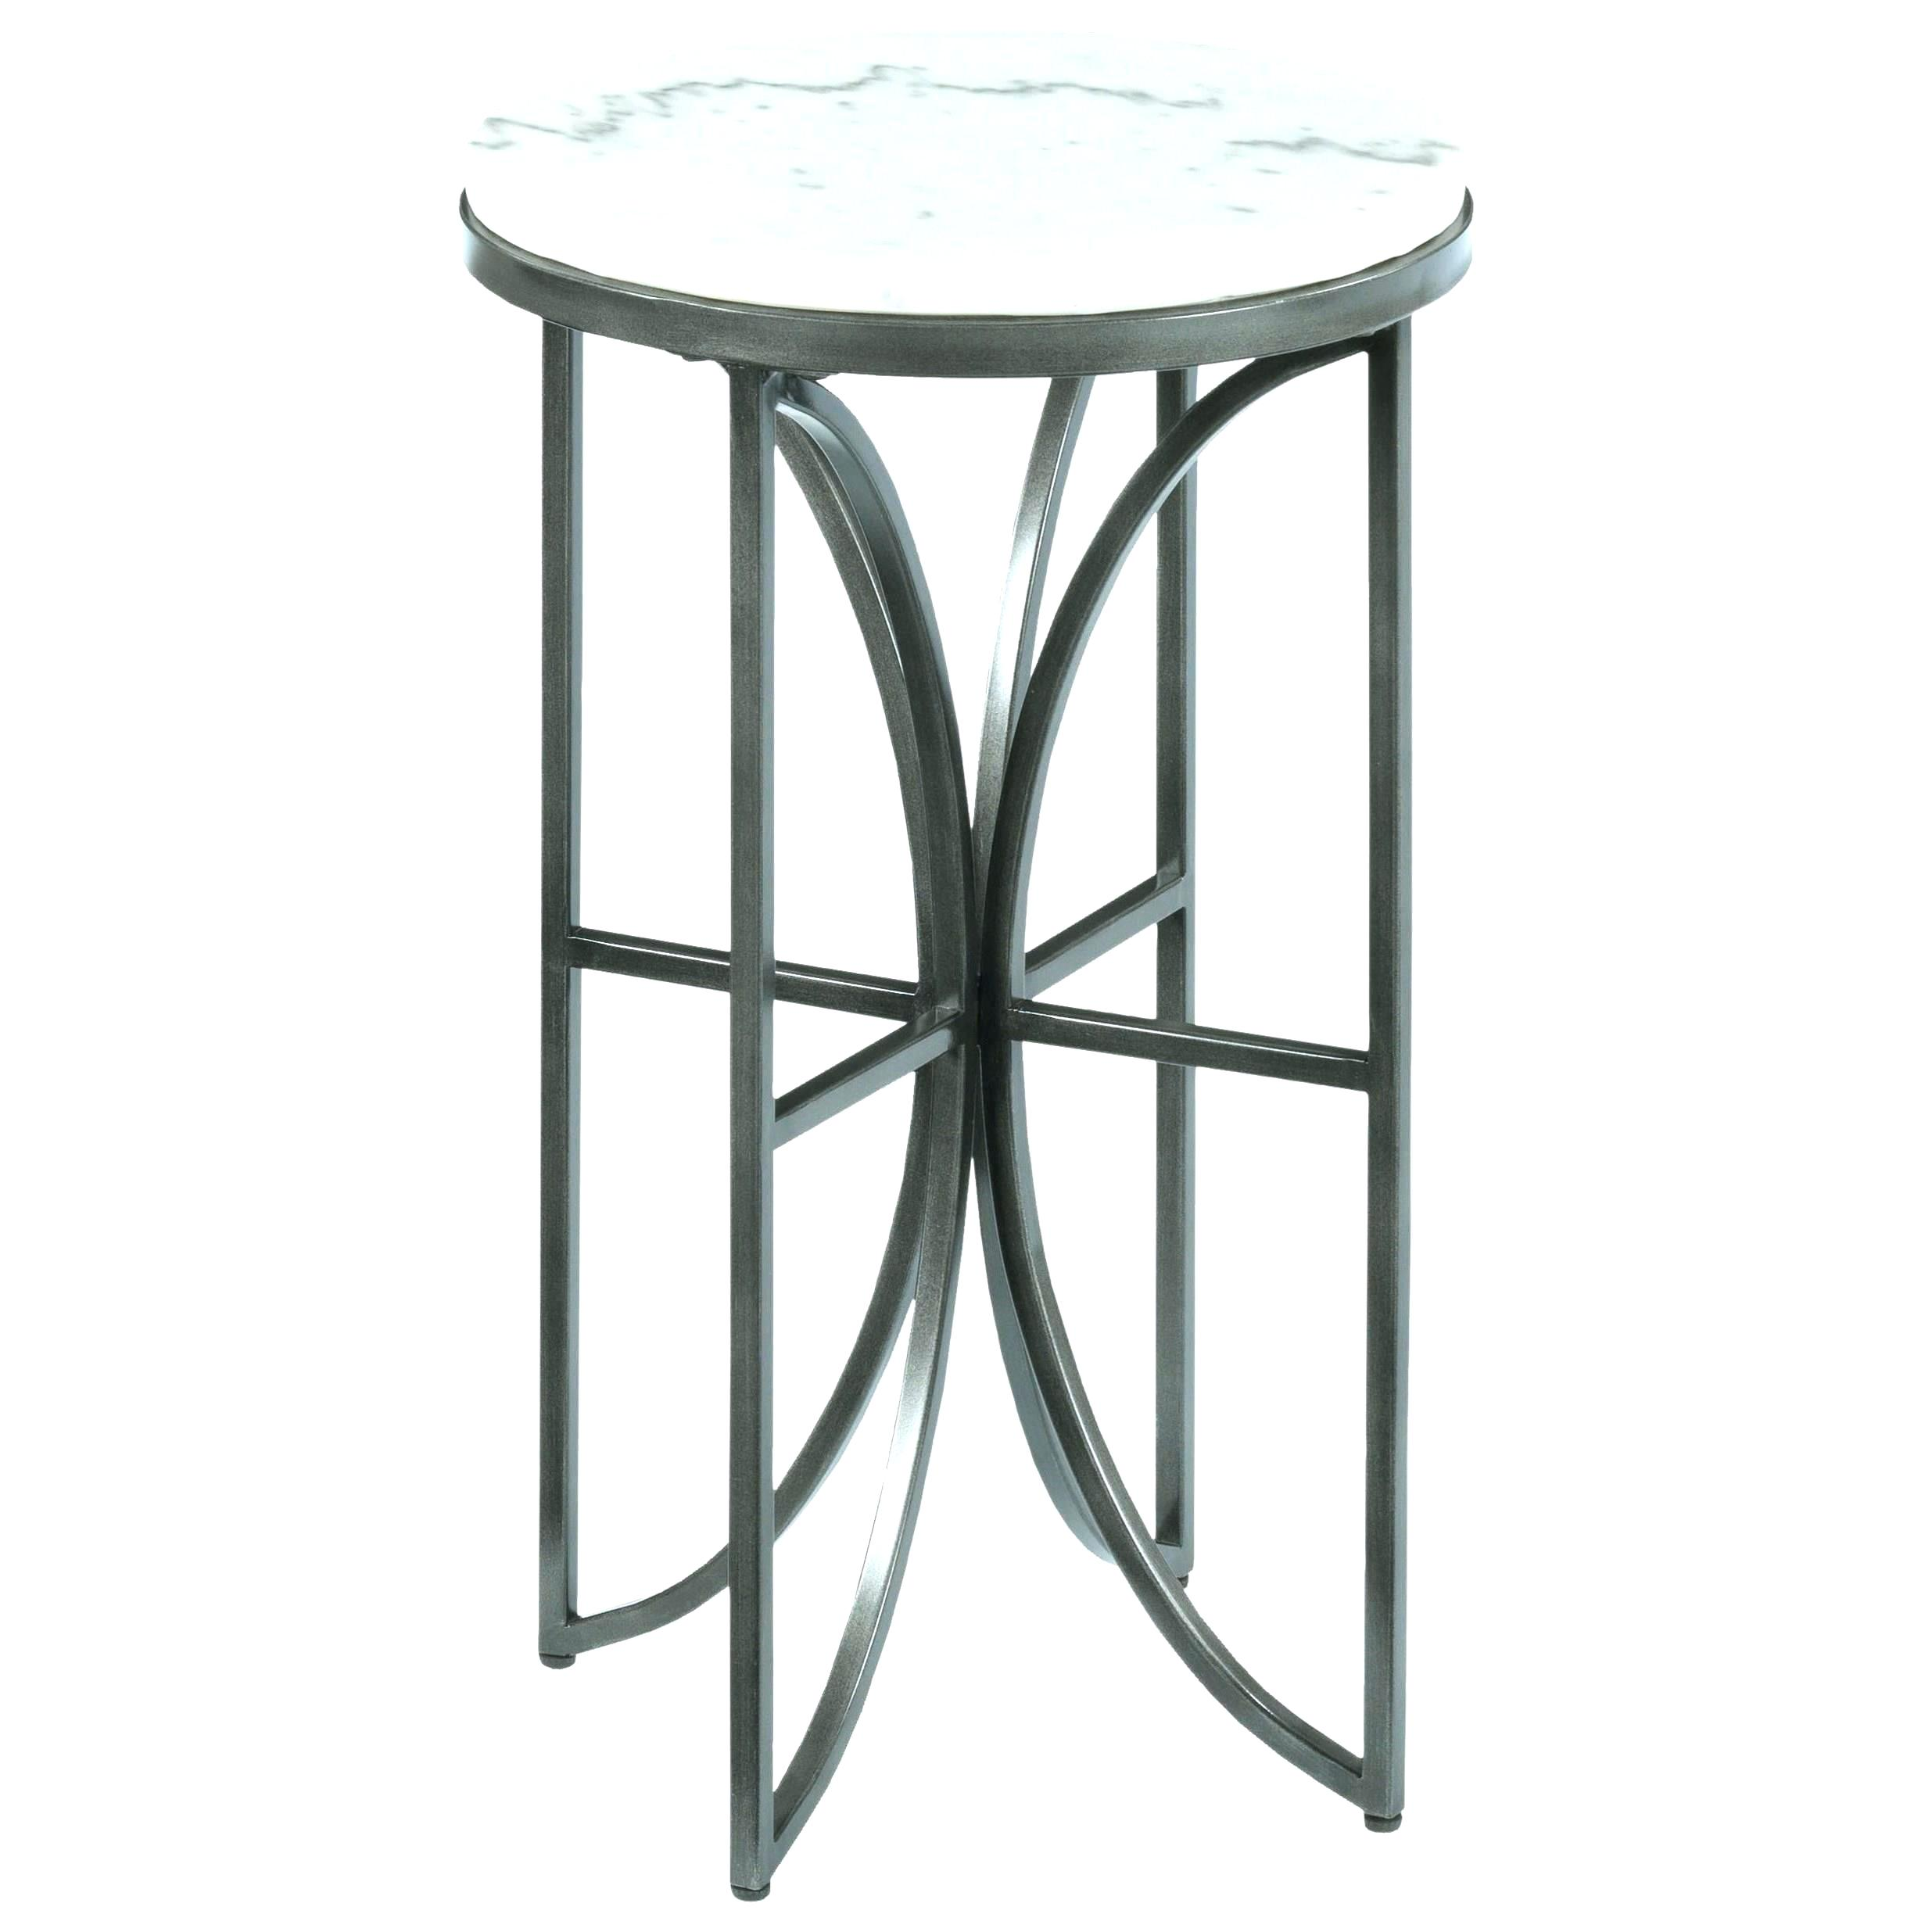 outdoor accent tables metal small pioneerproduceofnorthpole target patio side aurora furniture ashley trunk coffee table white home accessories antique yuma ethan allen drop leaf